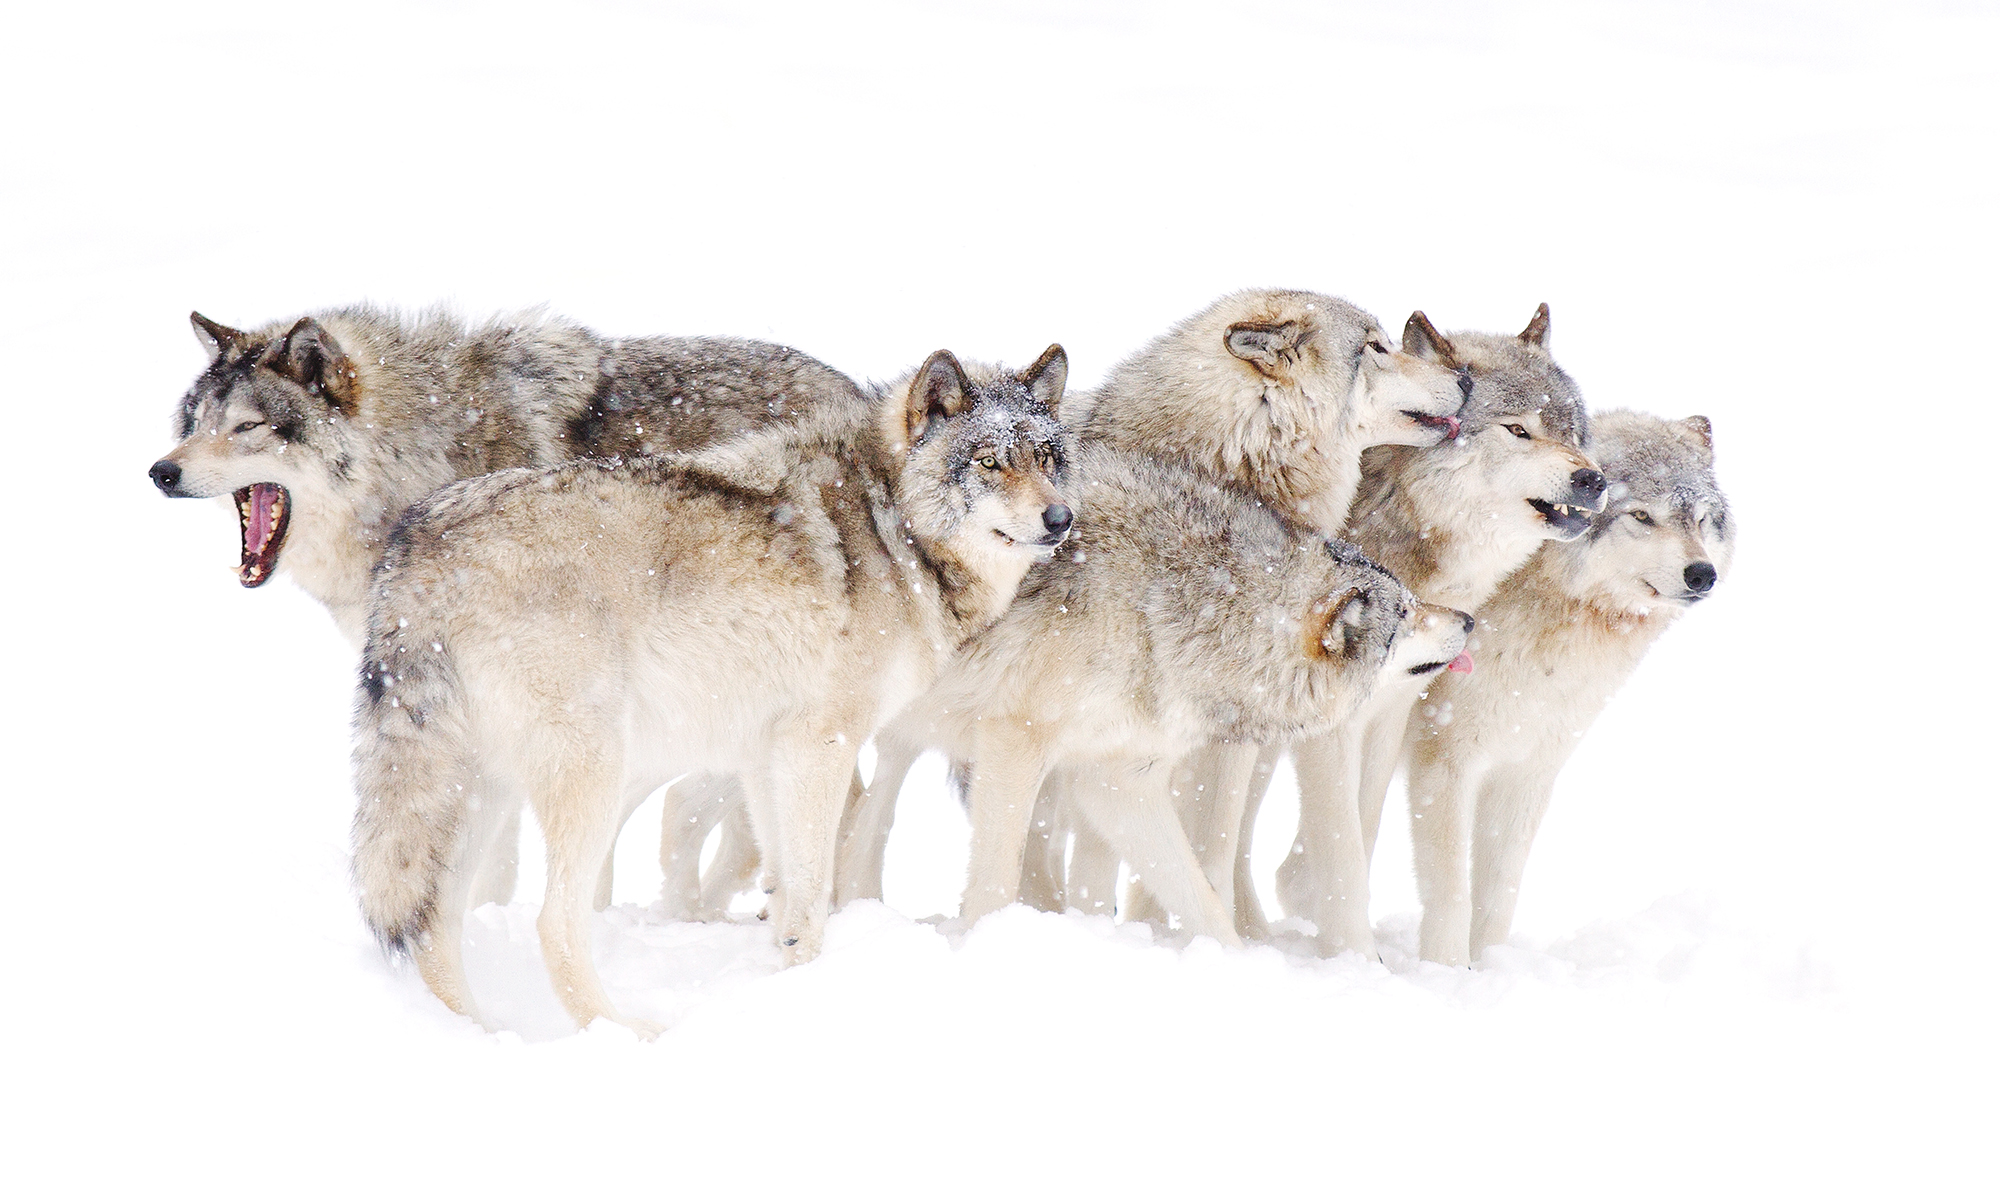 Pack of wolves photo